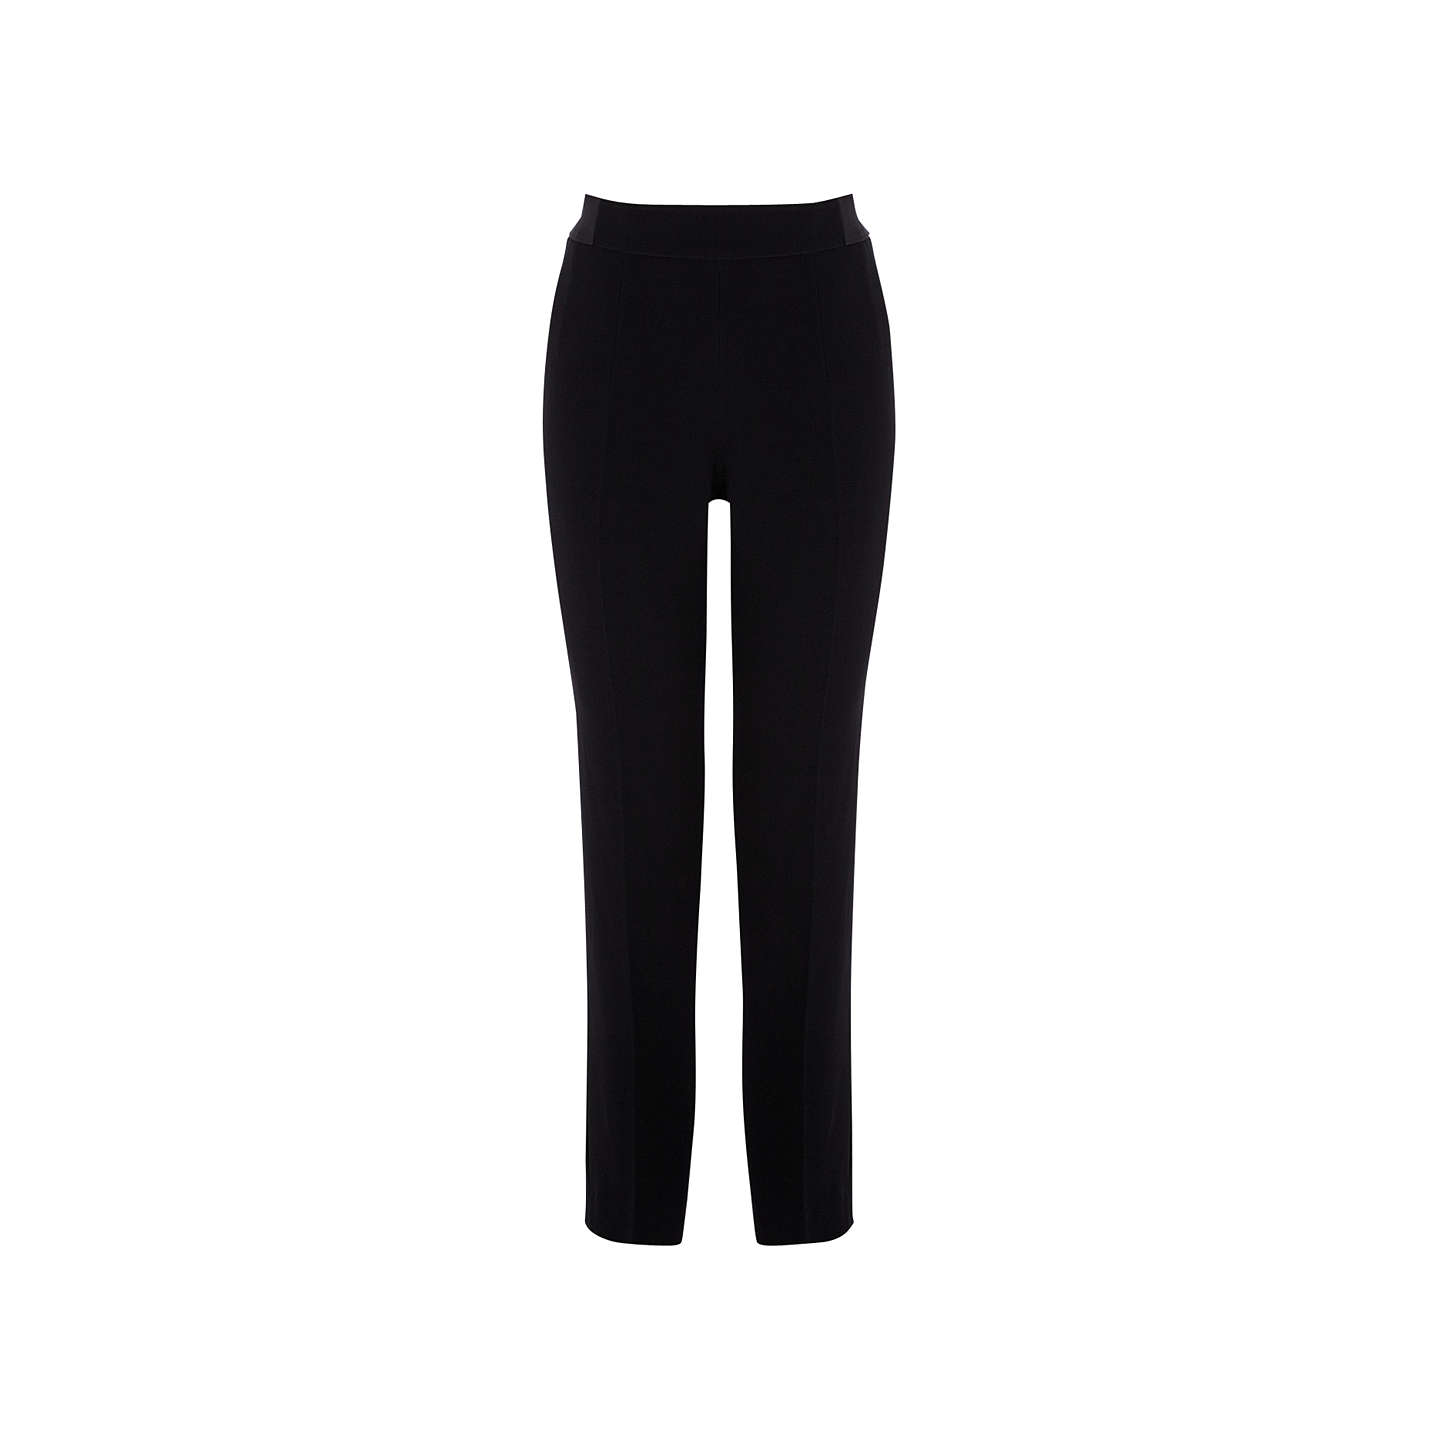 BuyCoast Shorter Length Seville Zip Detail Trousers, Black, 6 Online at johnlewis.com